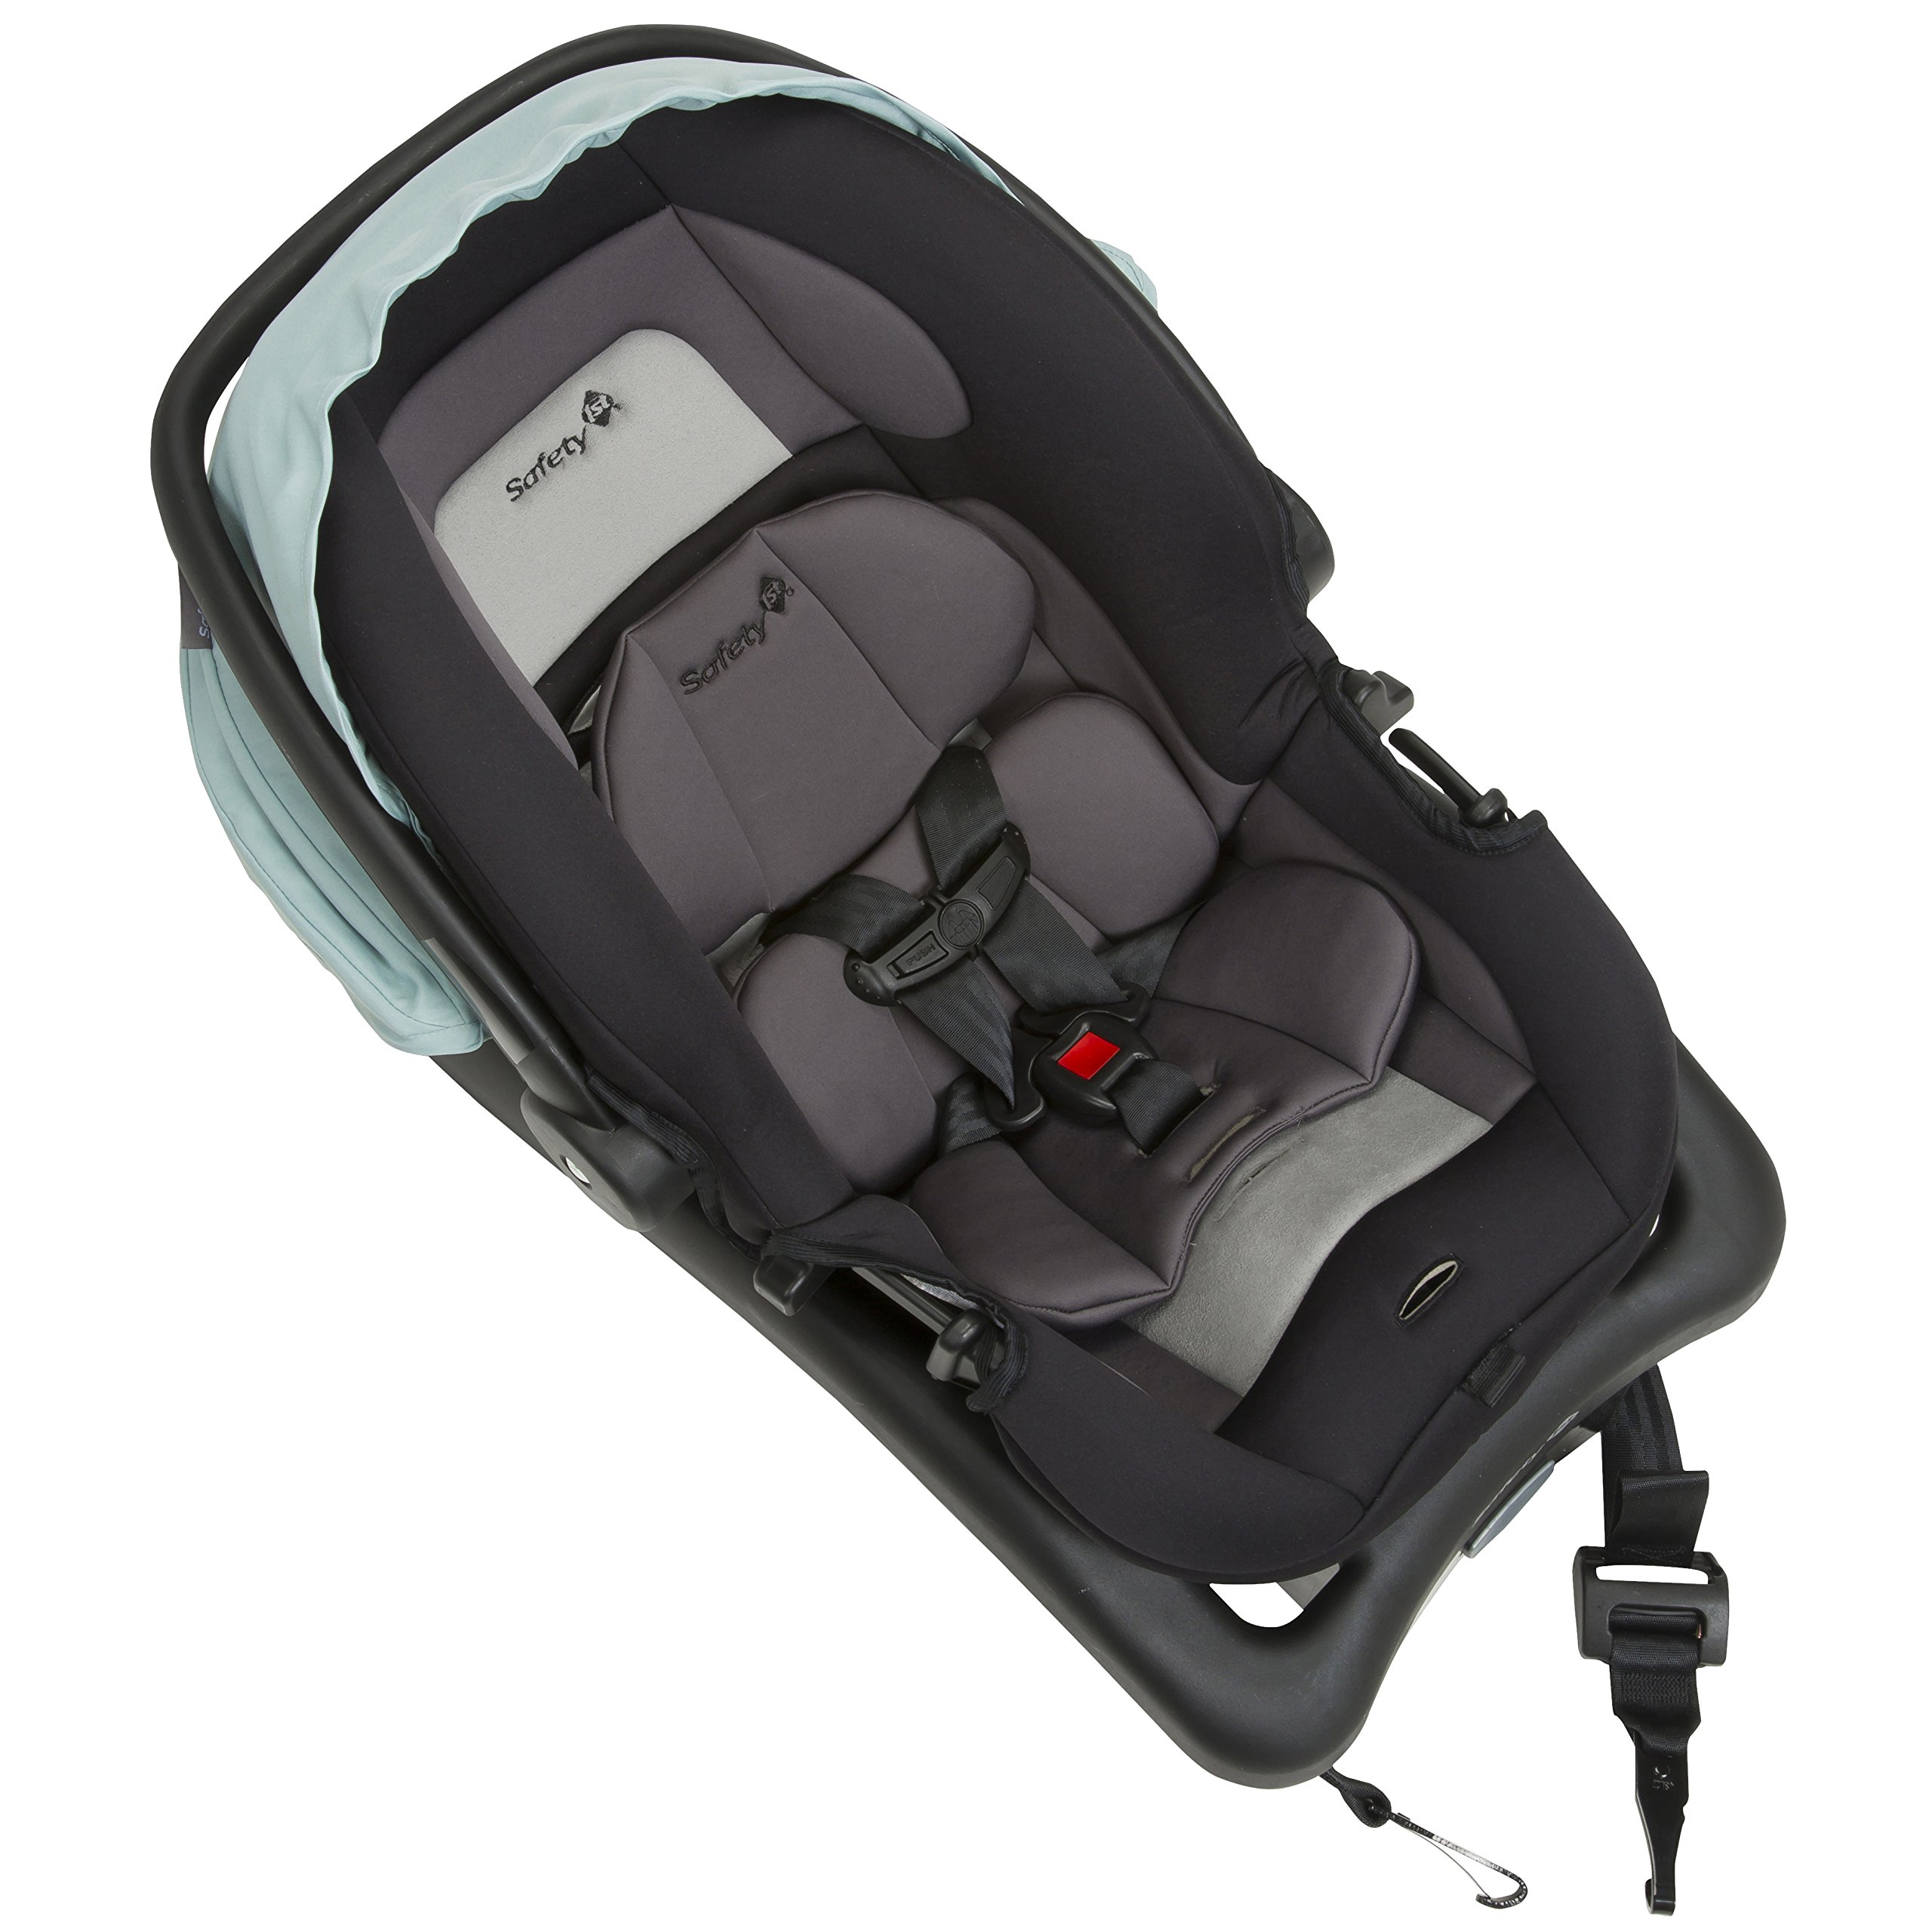 Safety 1st onBoard 35 LT Infant Car Seat, Juniper Pop by Safety 1st (Image #7)